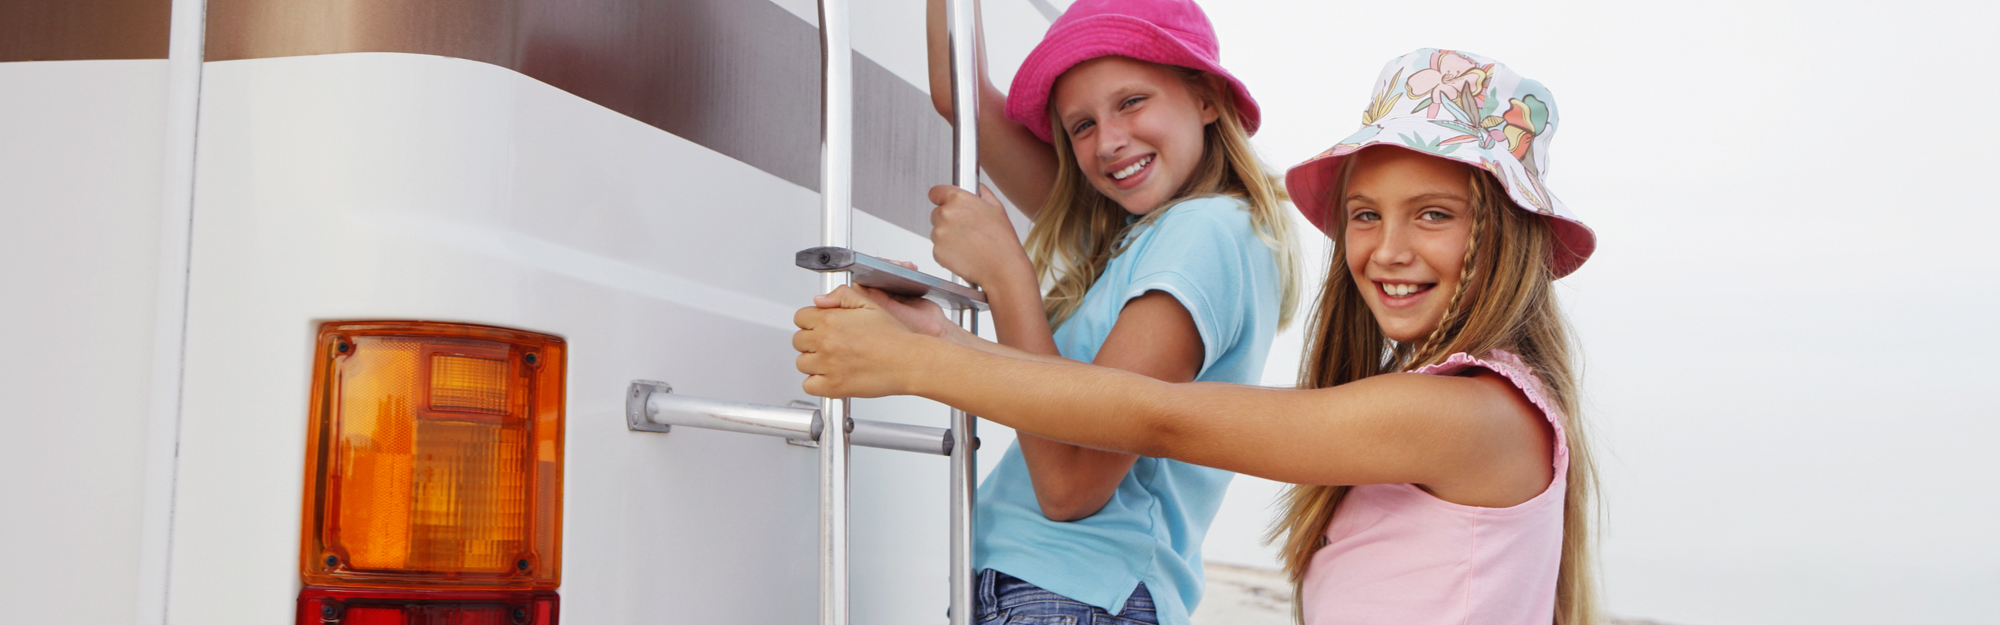 Two girls on a ladder to a trailer